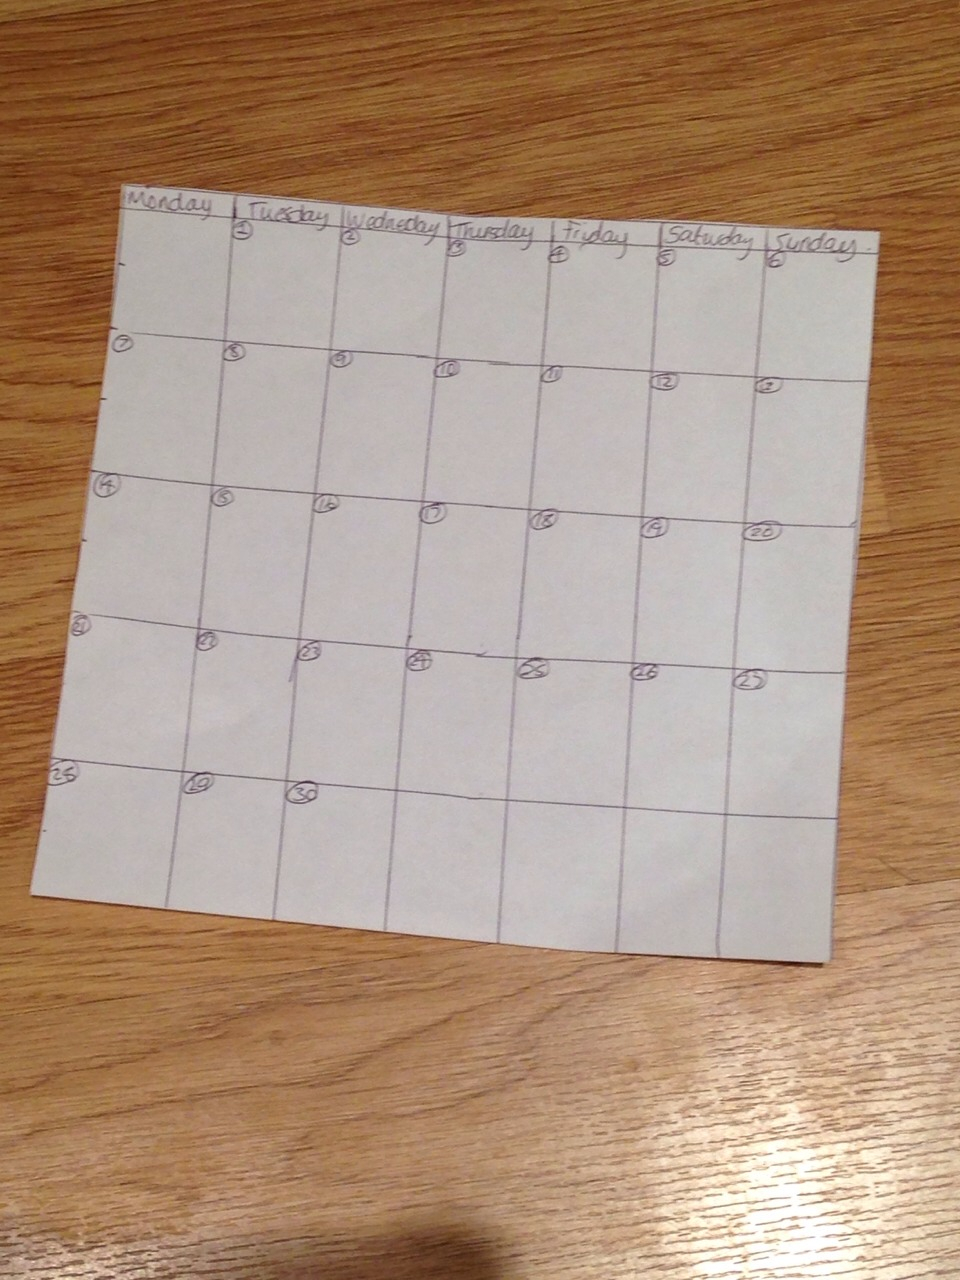 Draw yourself or print off a calendar of the month